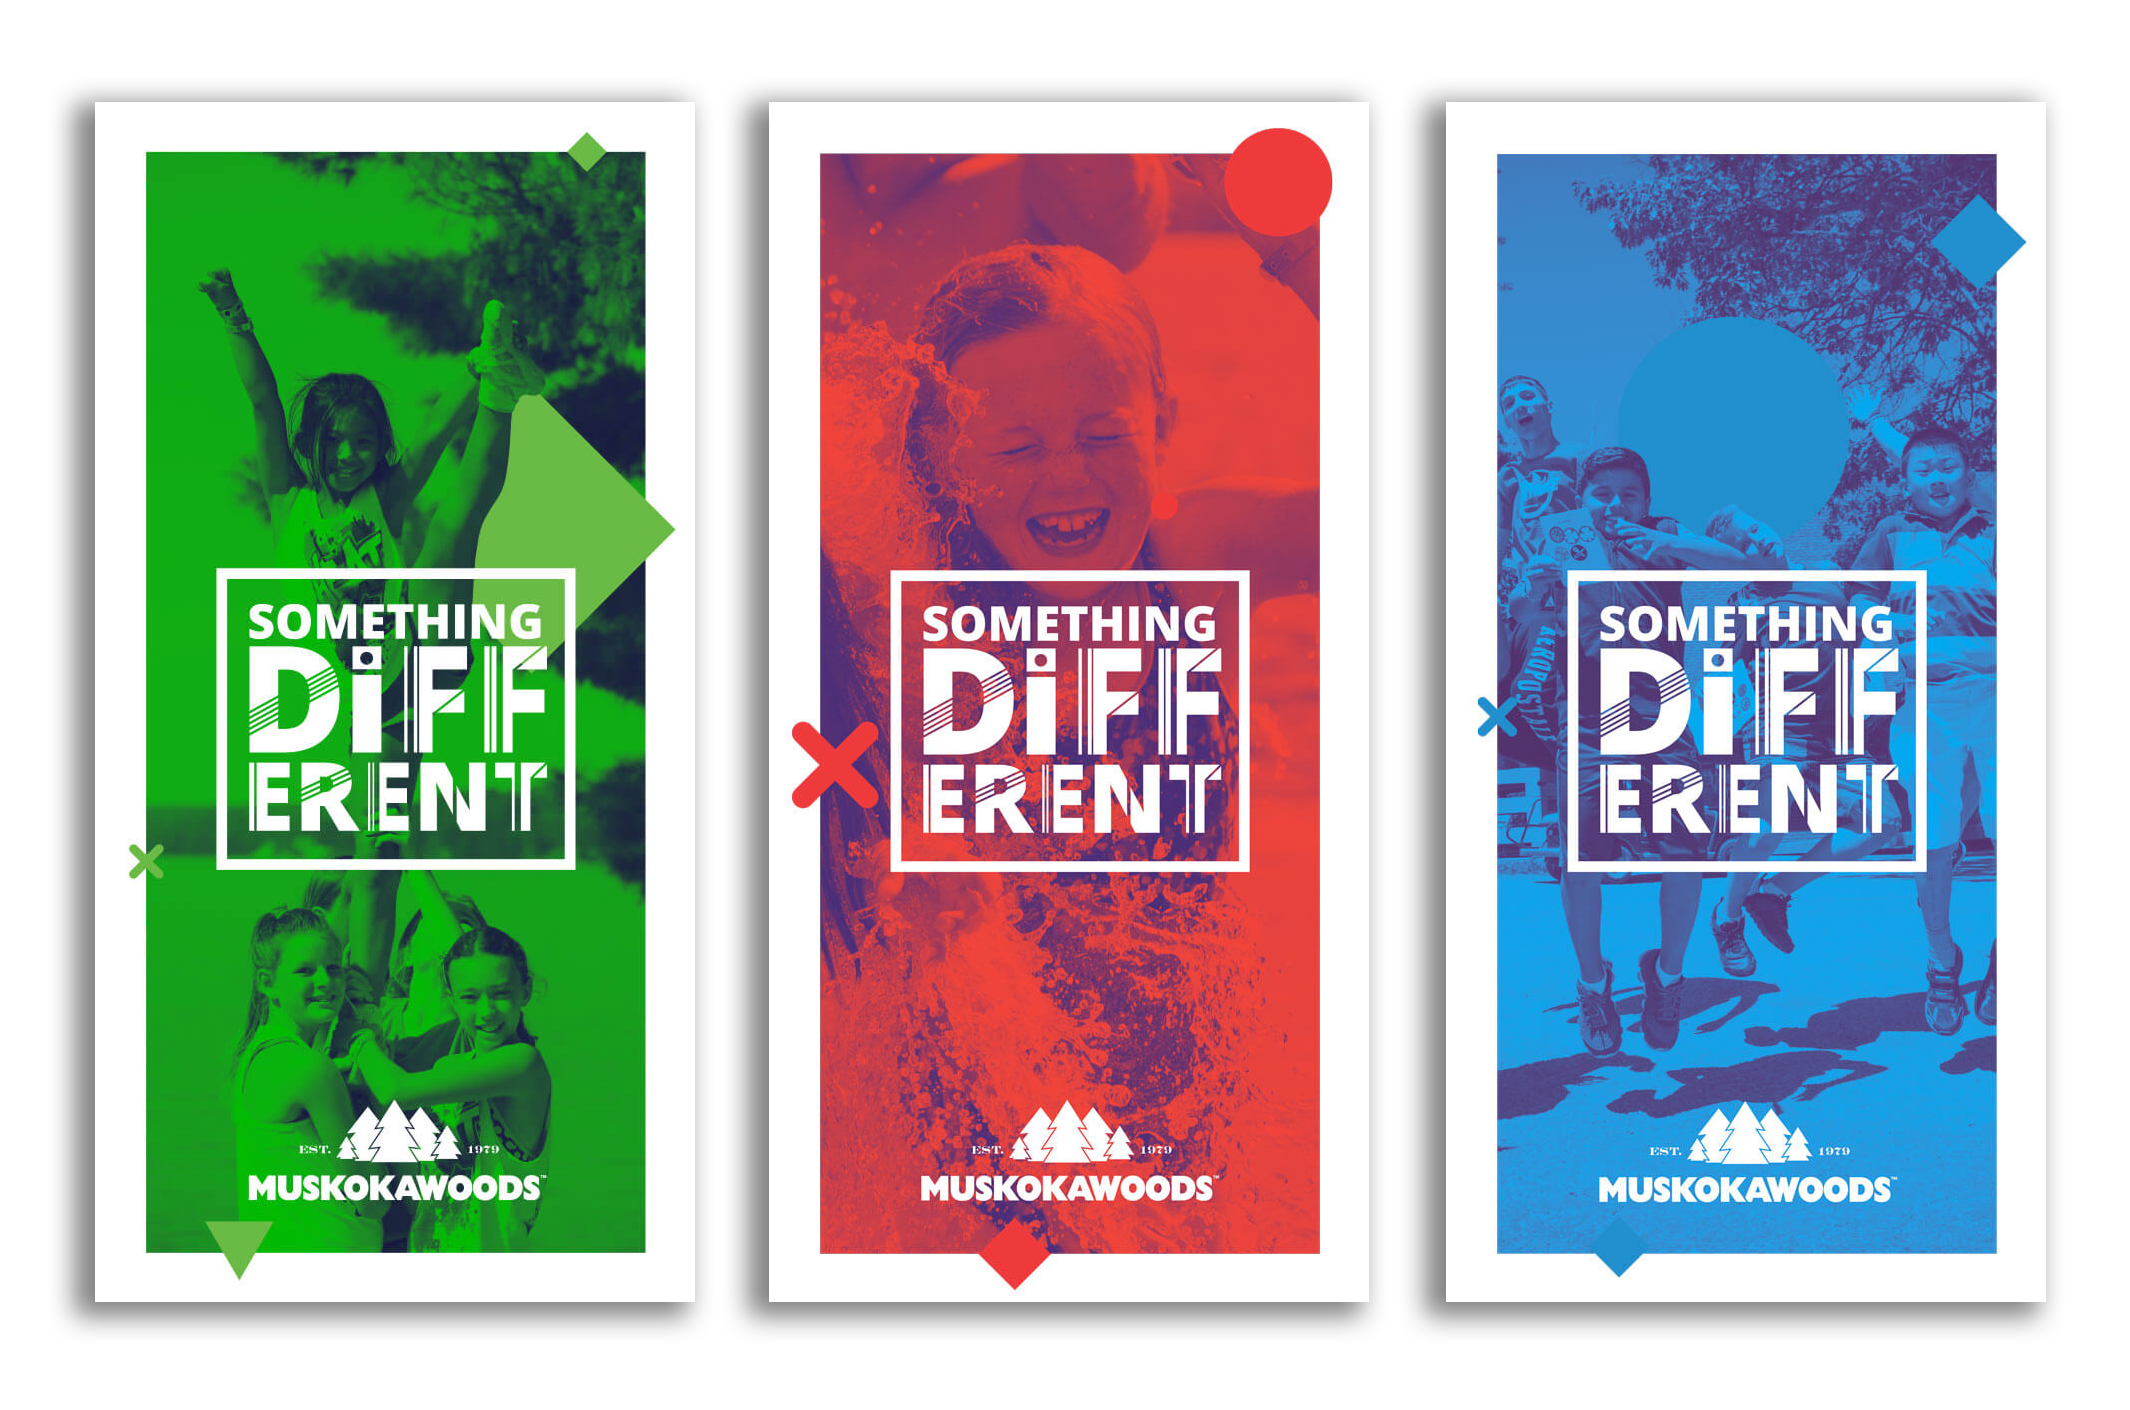 banners copy.png